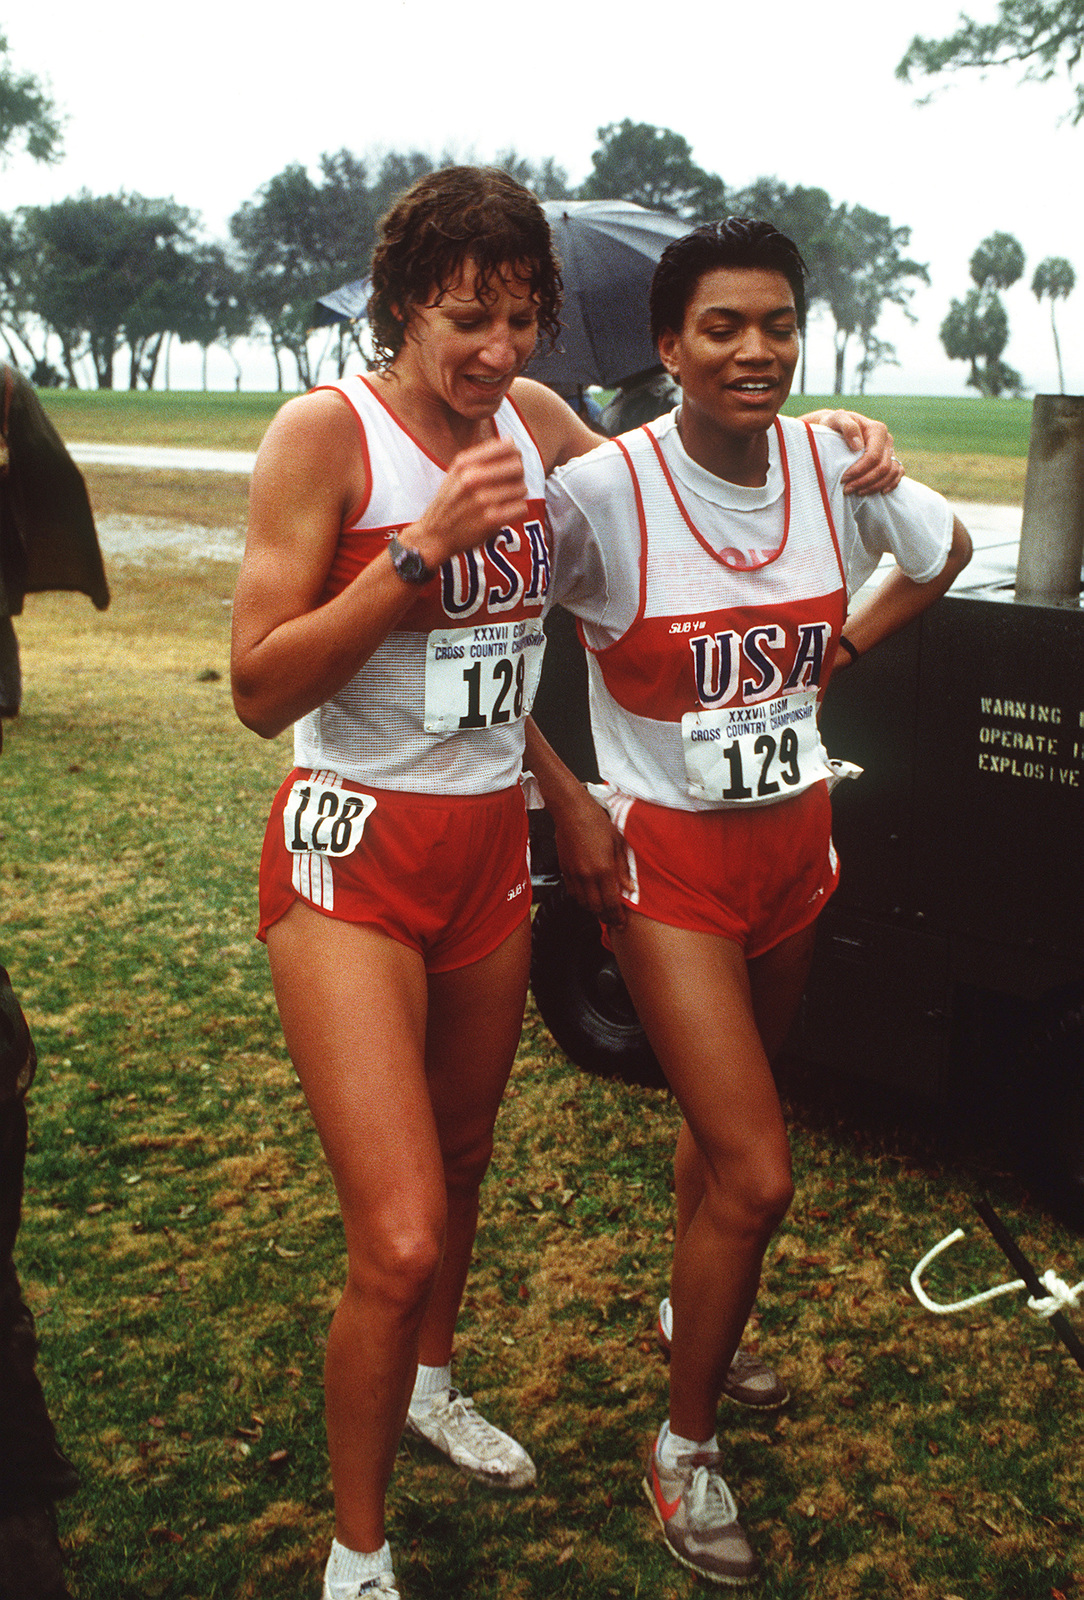 Wanda Howlett, US Army, left, and Lauretta Miller, US Marine Corps, warm down after running their race in the 1988 Conseil International Du Sport Militaire's Cross Country Championship (CISM)